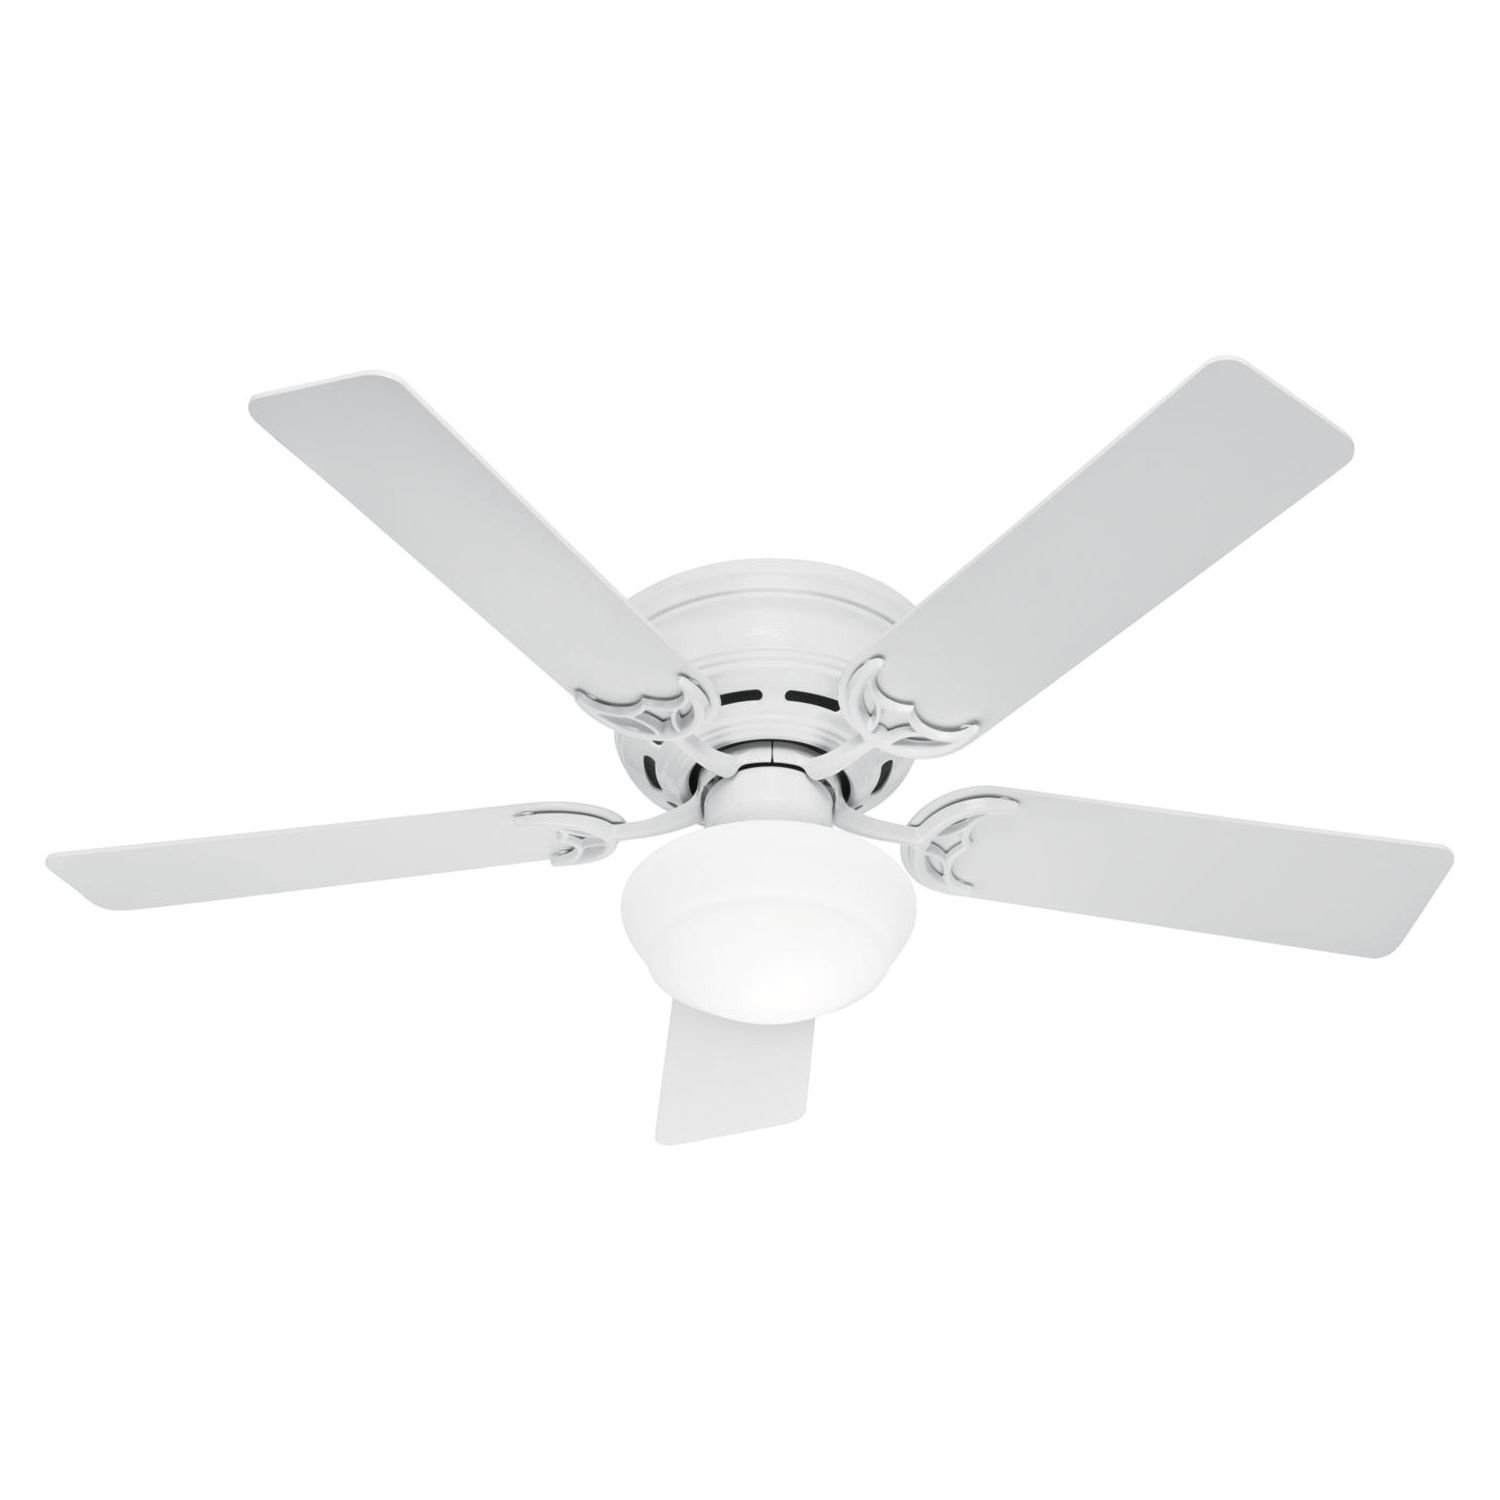 This hunter inch ceiling fan iii plus combines th